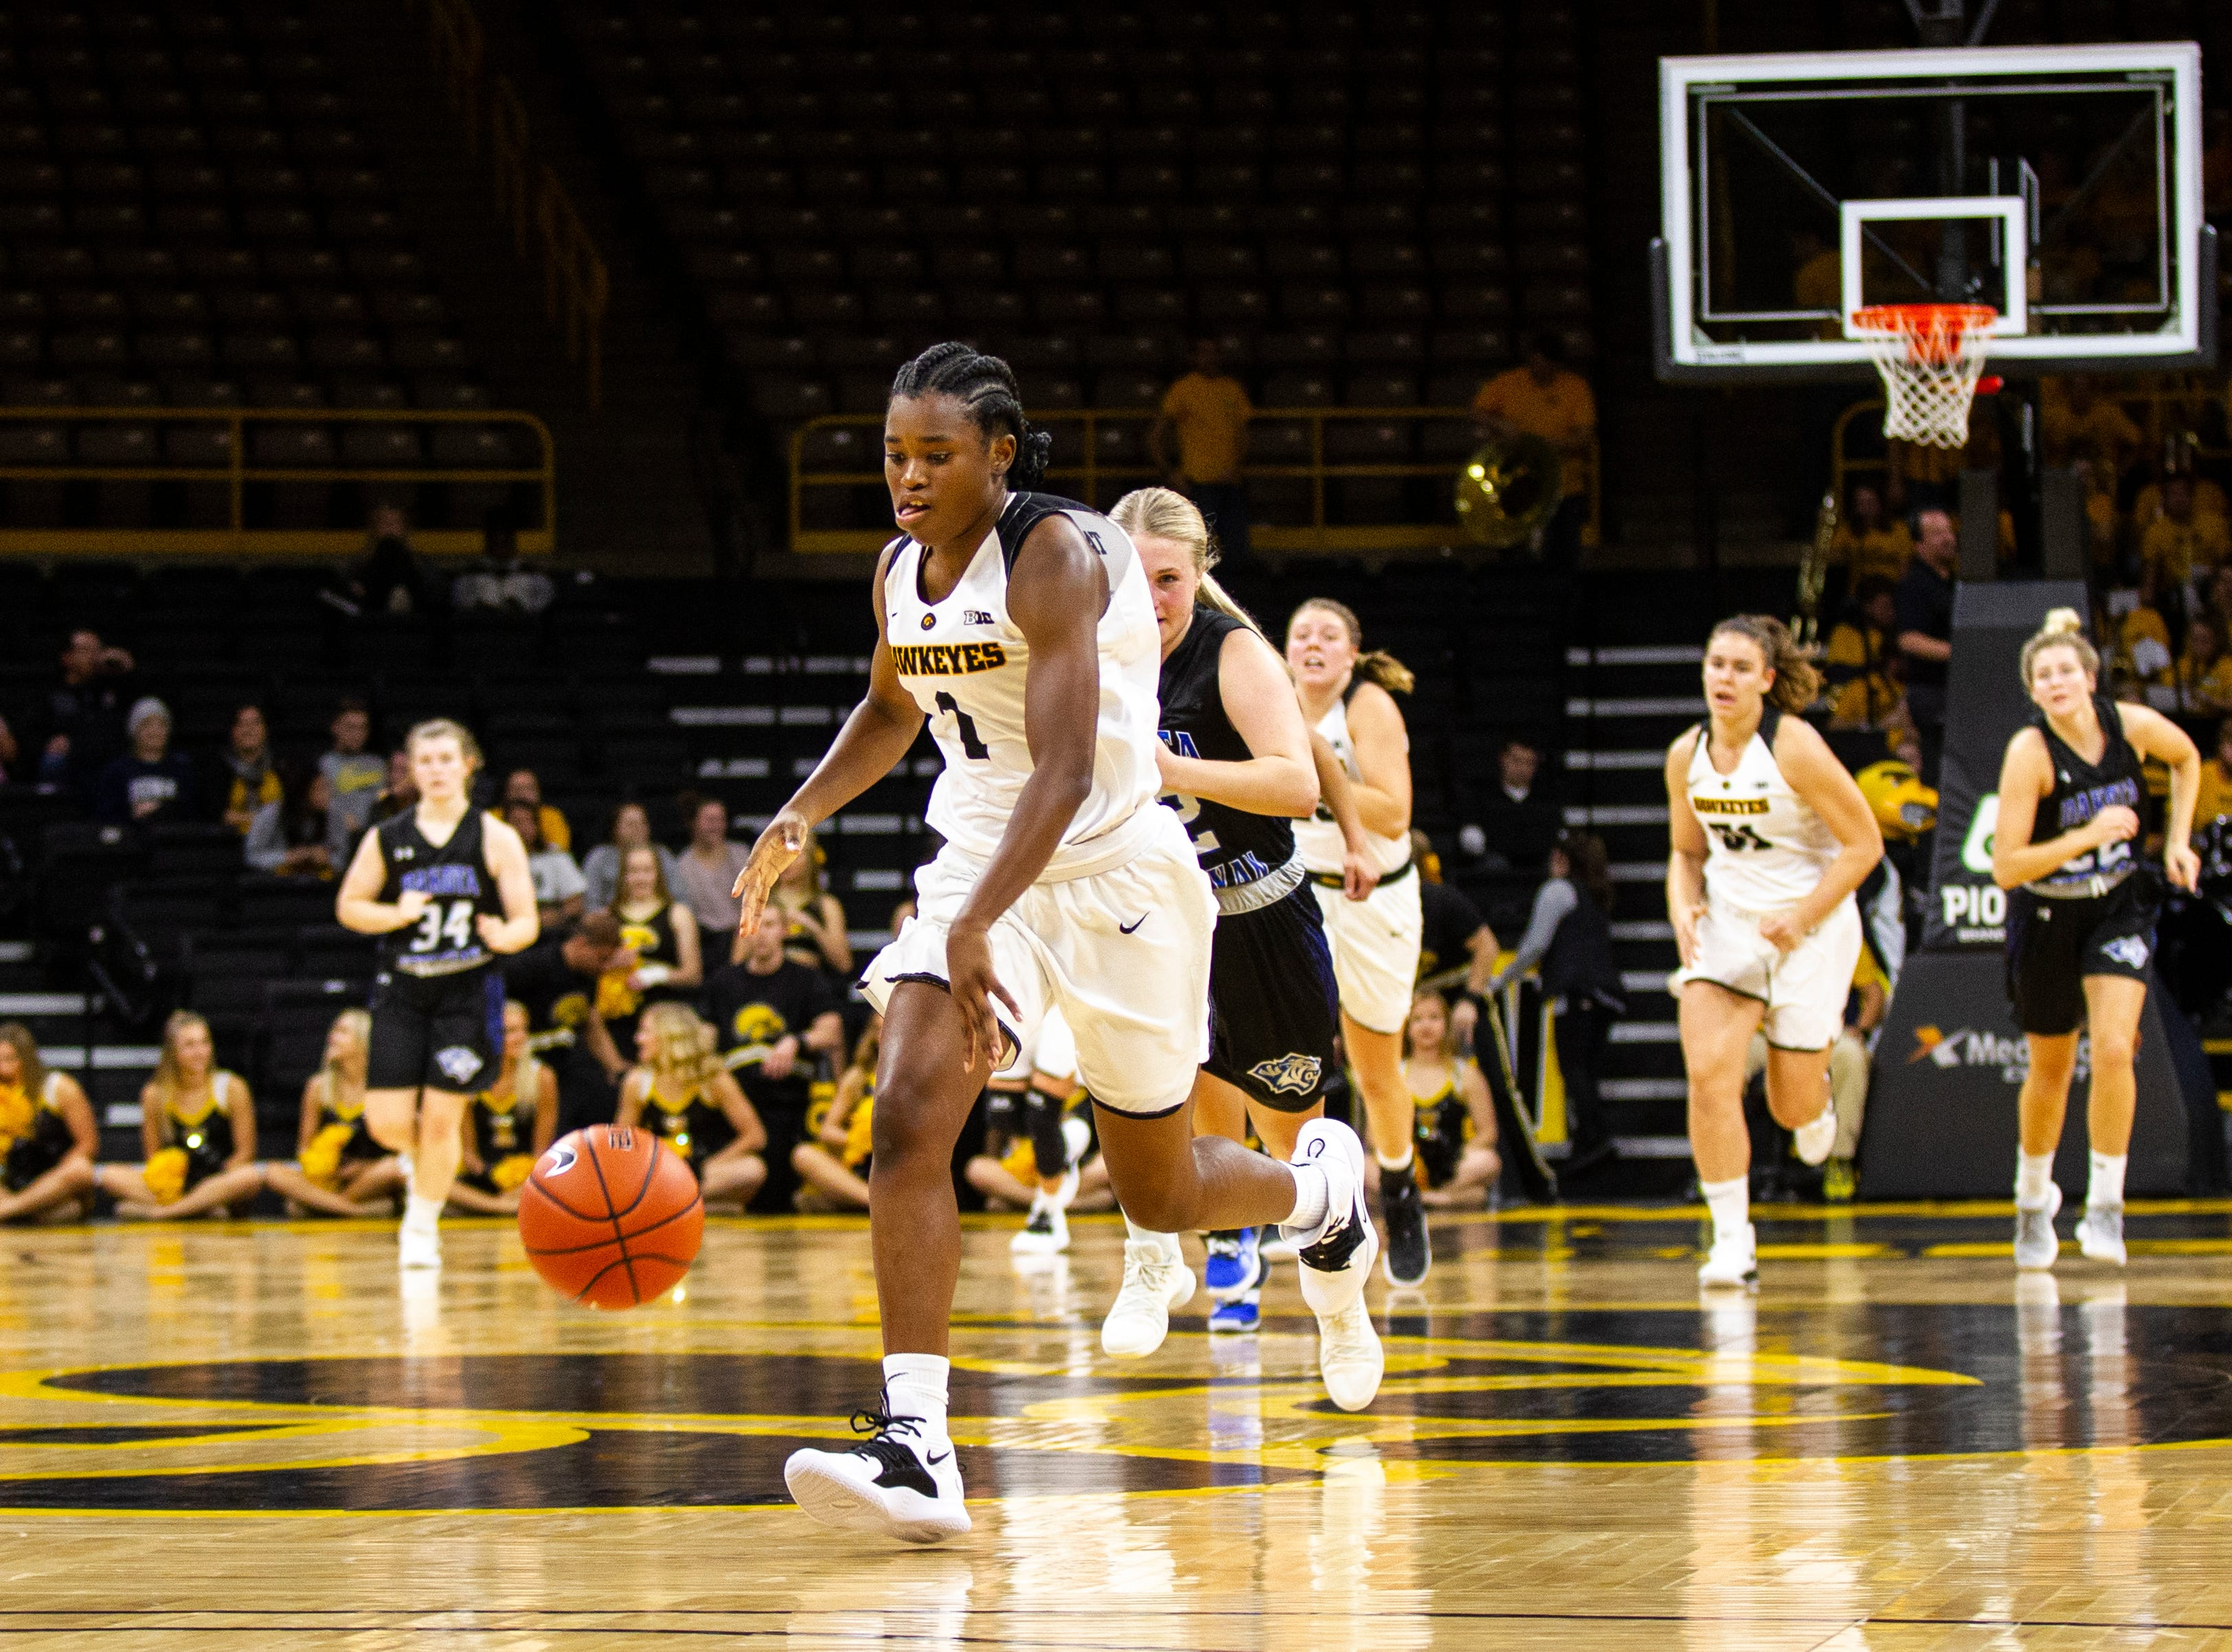 Iowa guard Tomi Taiwo (1) gets a steal during a women's basketball exhibition basketball game on Tuesday, Nov. 6, 2018, at Carver-Hawkeye Arena in Iowa City.